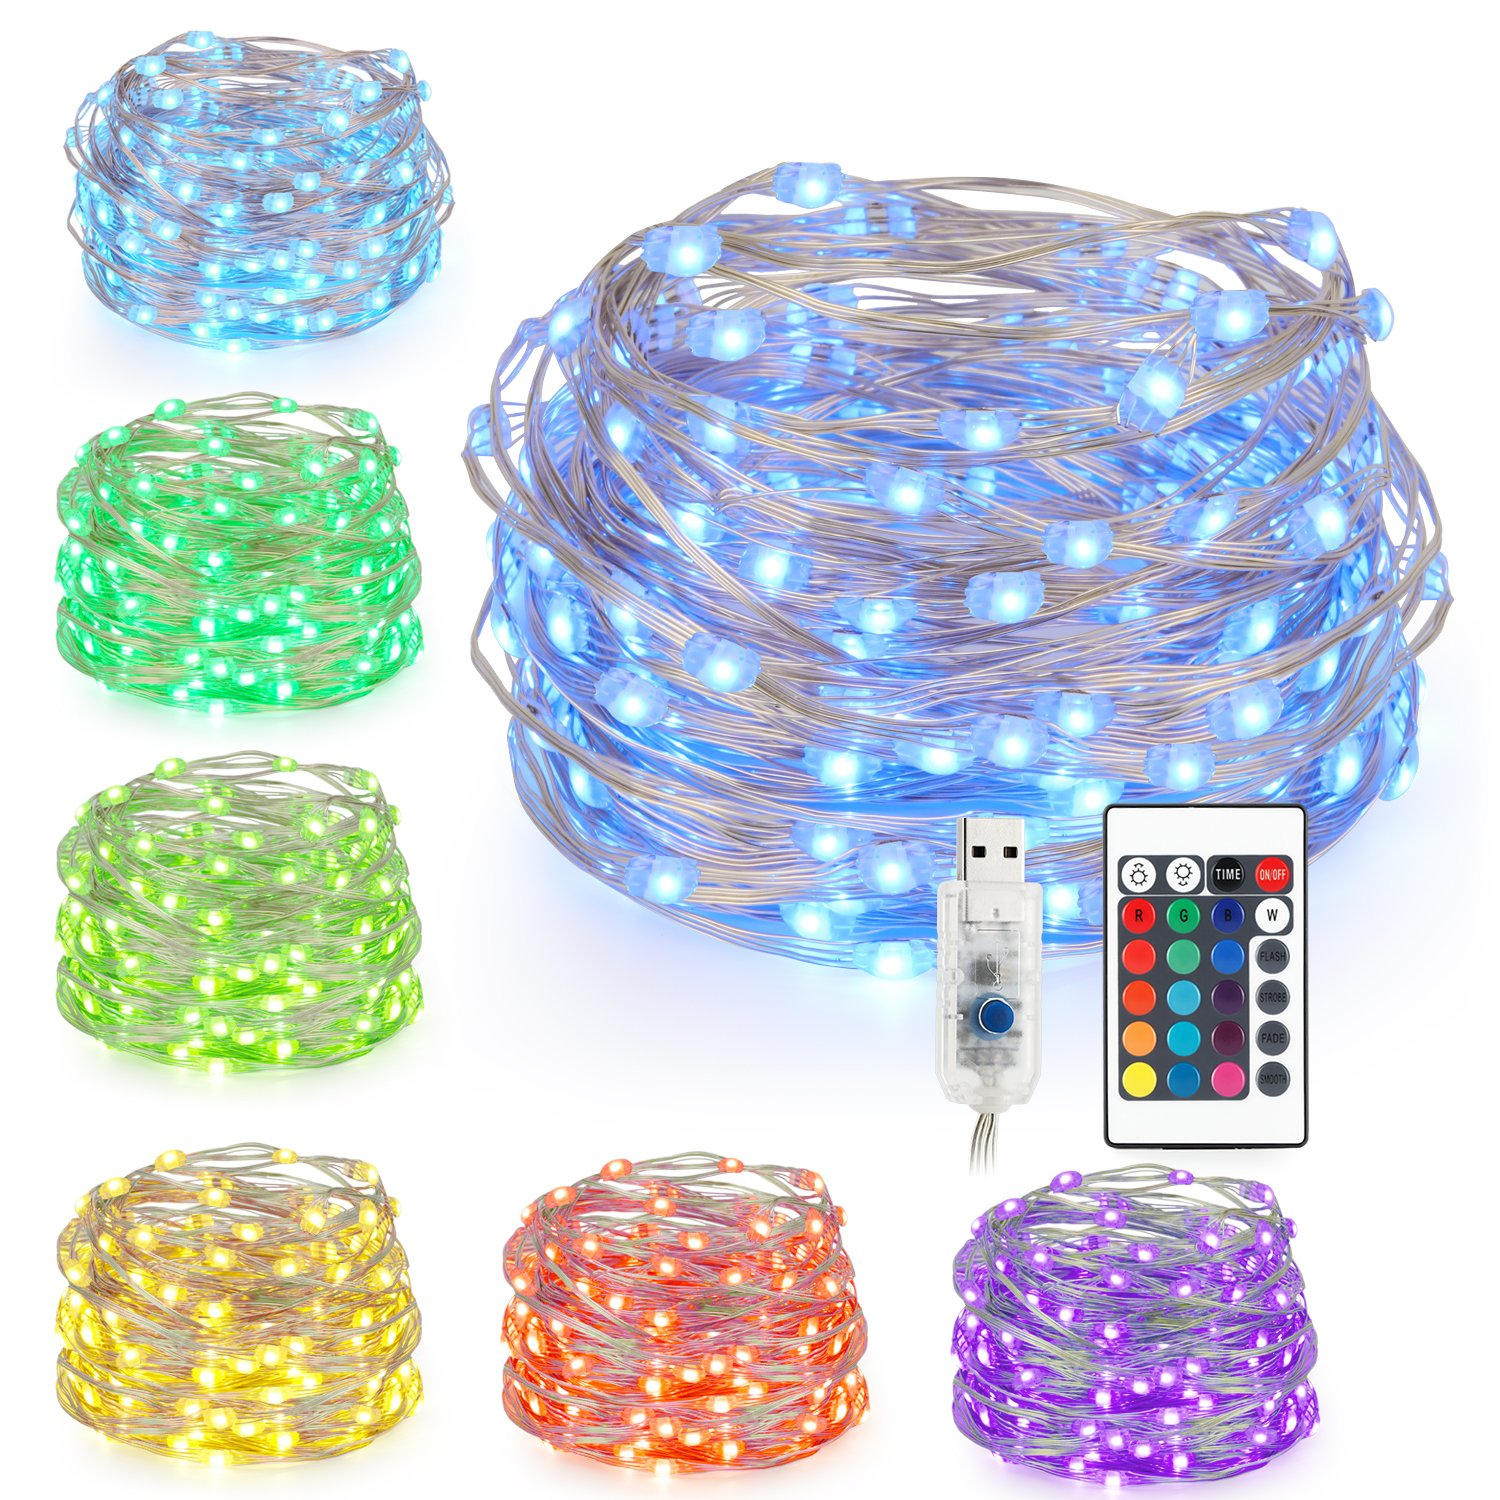 Kohree LED String Lights,USB Powered Multi Color Changing String Lights with Remote,100leds Indoor Decorative Silver Wire Lights for Bedroom,Patio,Outdoor Garden,Stroller,DecorTree.(33 ft 16 Colors)